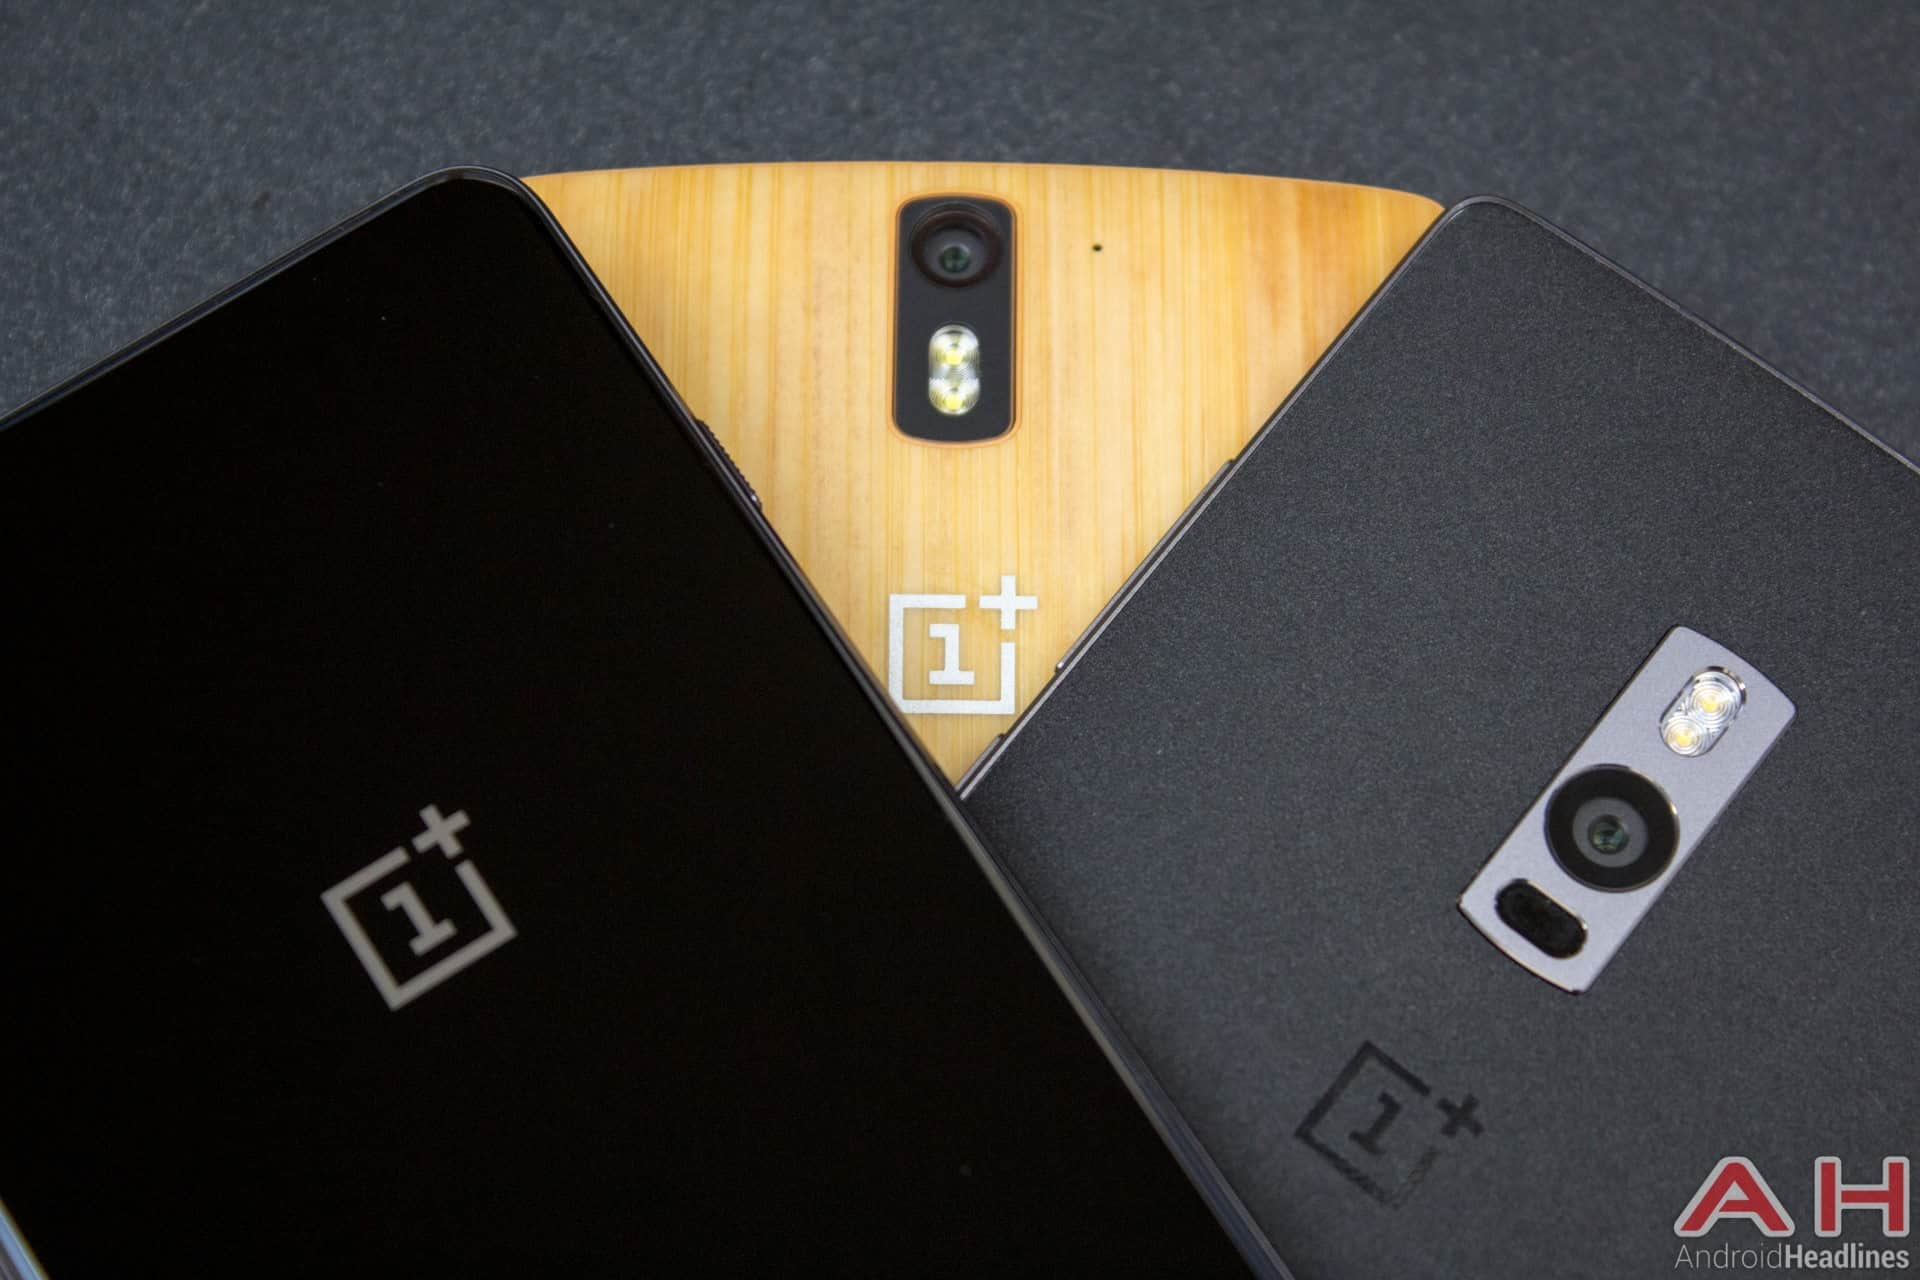 OnePlus All Phones